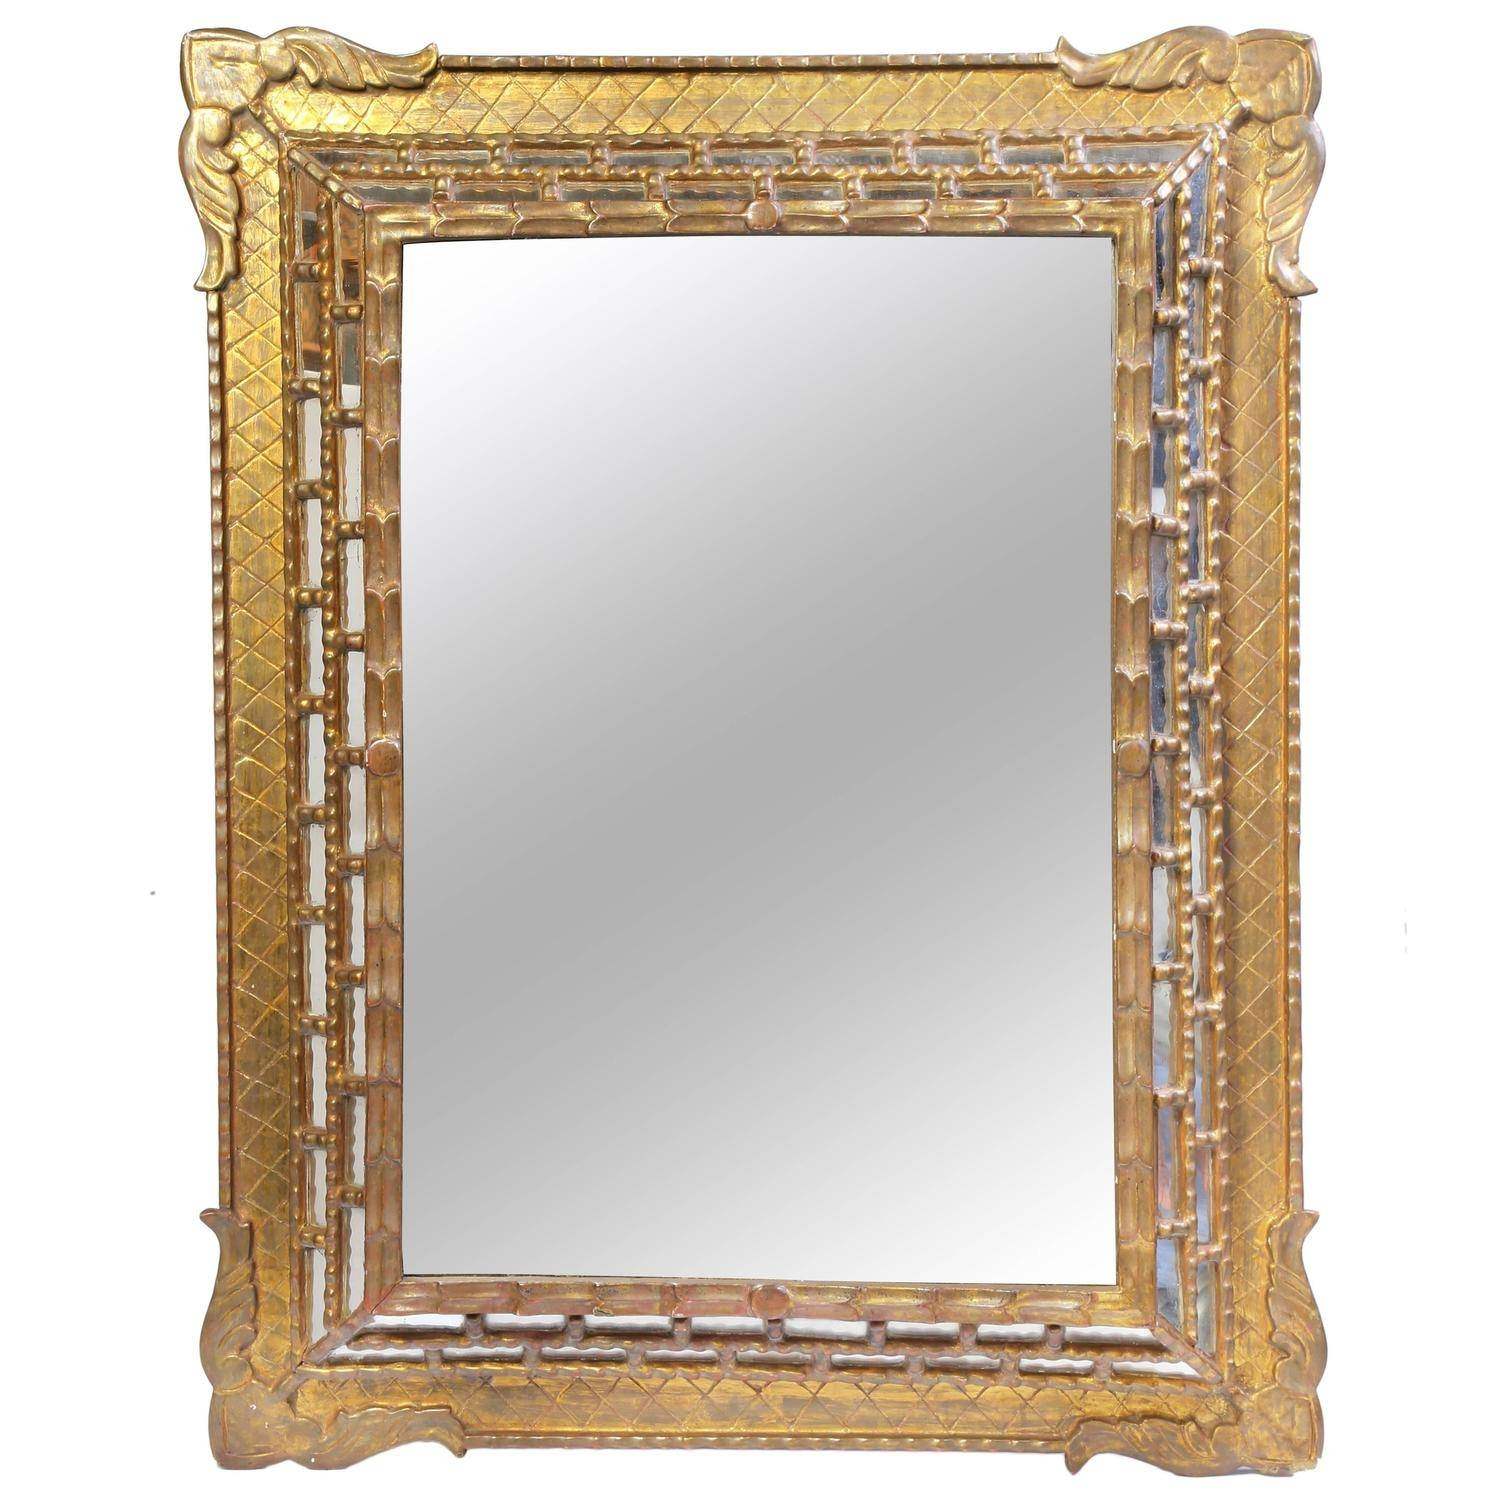 Bathroom: Astounding Baroque Mirror With Unique Frame For Bathroom pertaining to Gothic Style Mirrors (Image 12 of 25)